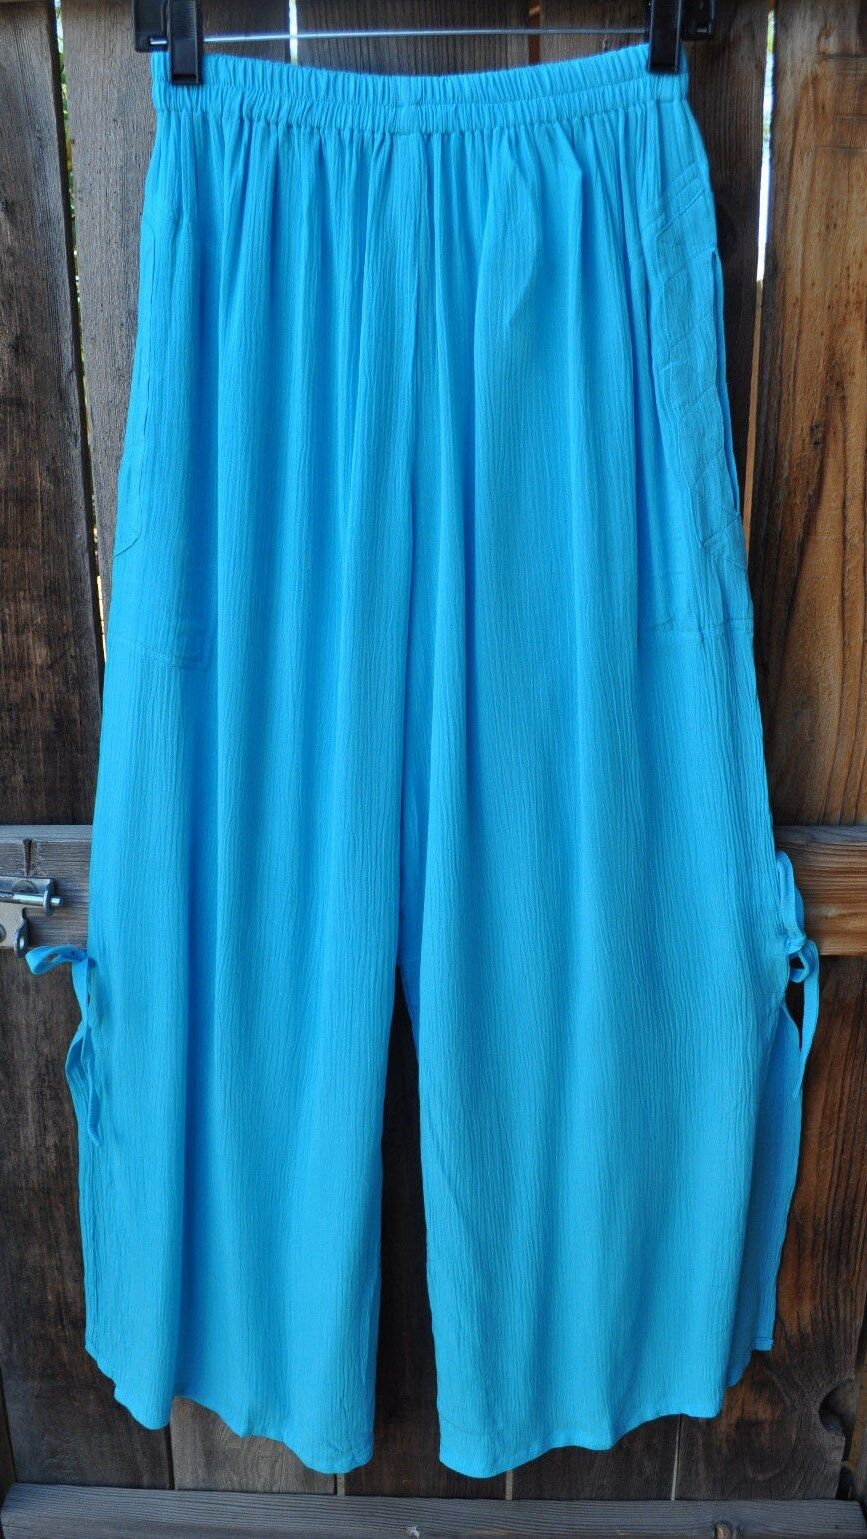 ART TO WEAR FLIRTY BL3 PANTS IN SOLID TURQUOISE BY MISSION CANYON,ONE SIZE